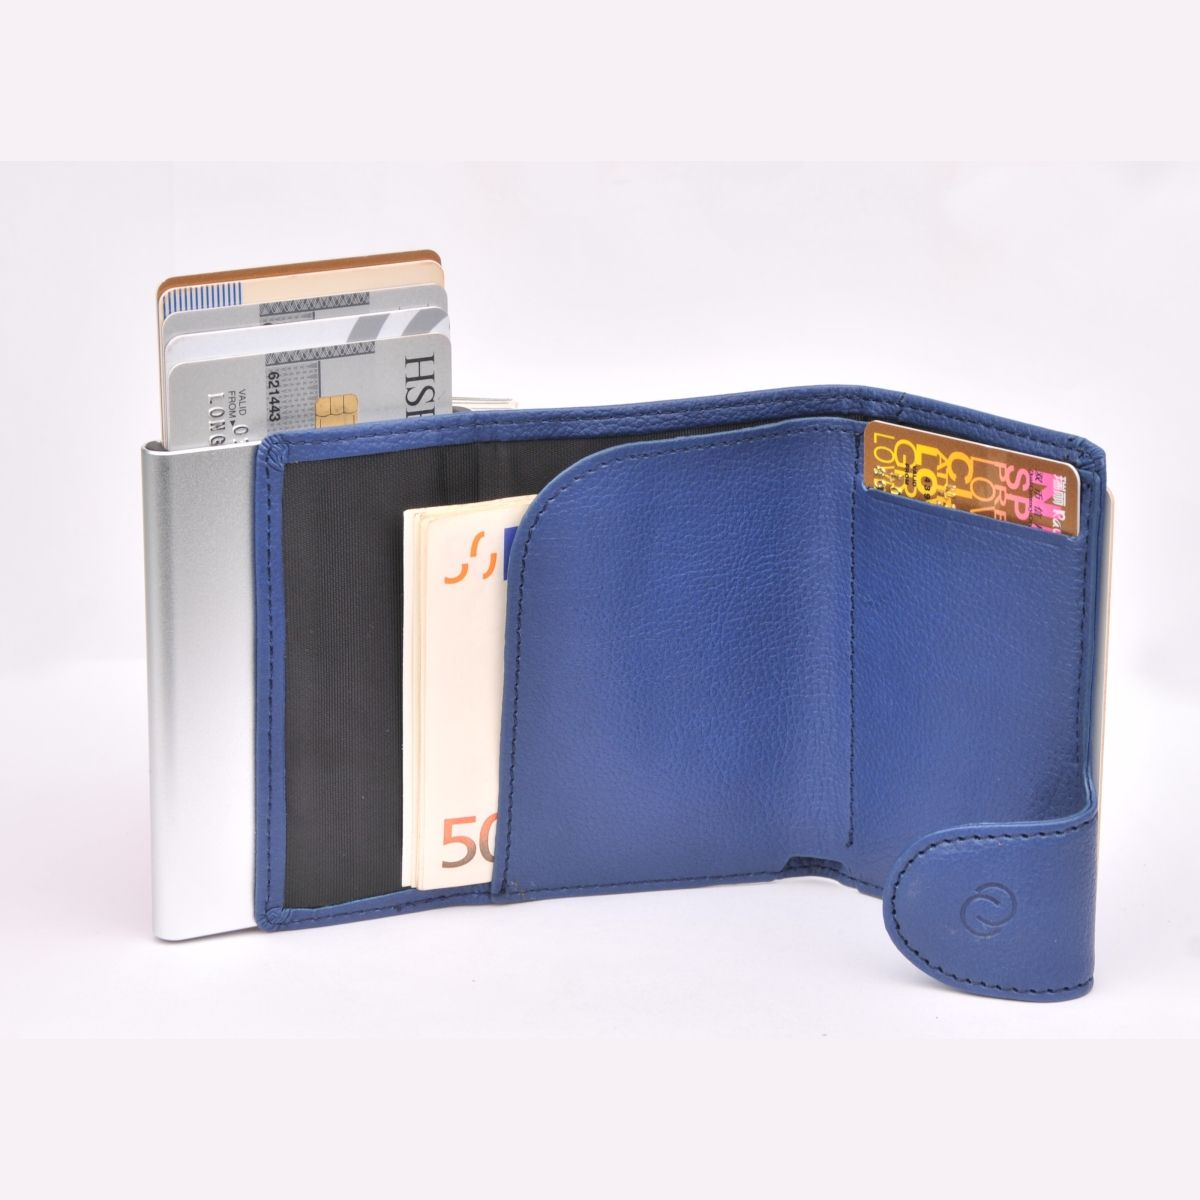 Aluminum Card Holder with PU Leather - Blue